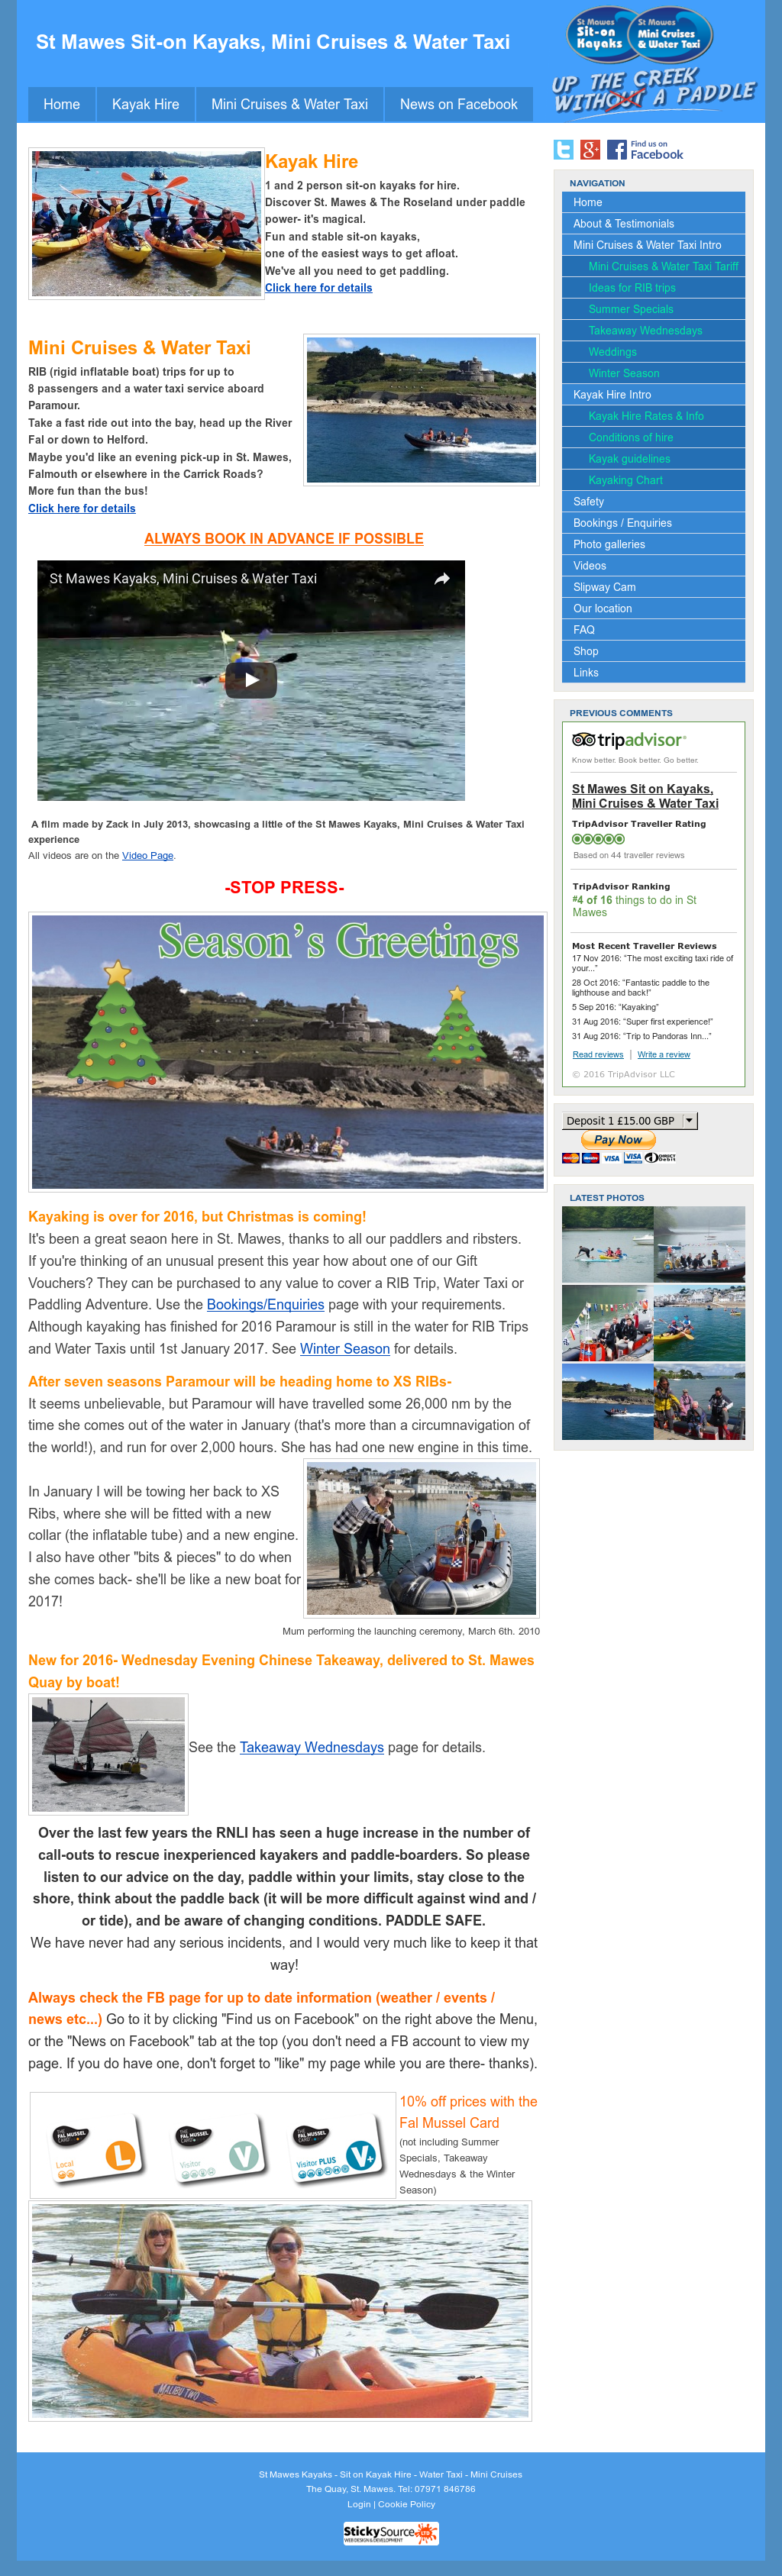 St Mawes Kayaks, Mini Cruises & Water Taxi Competitors, Revenue and